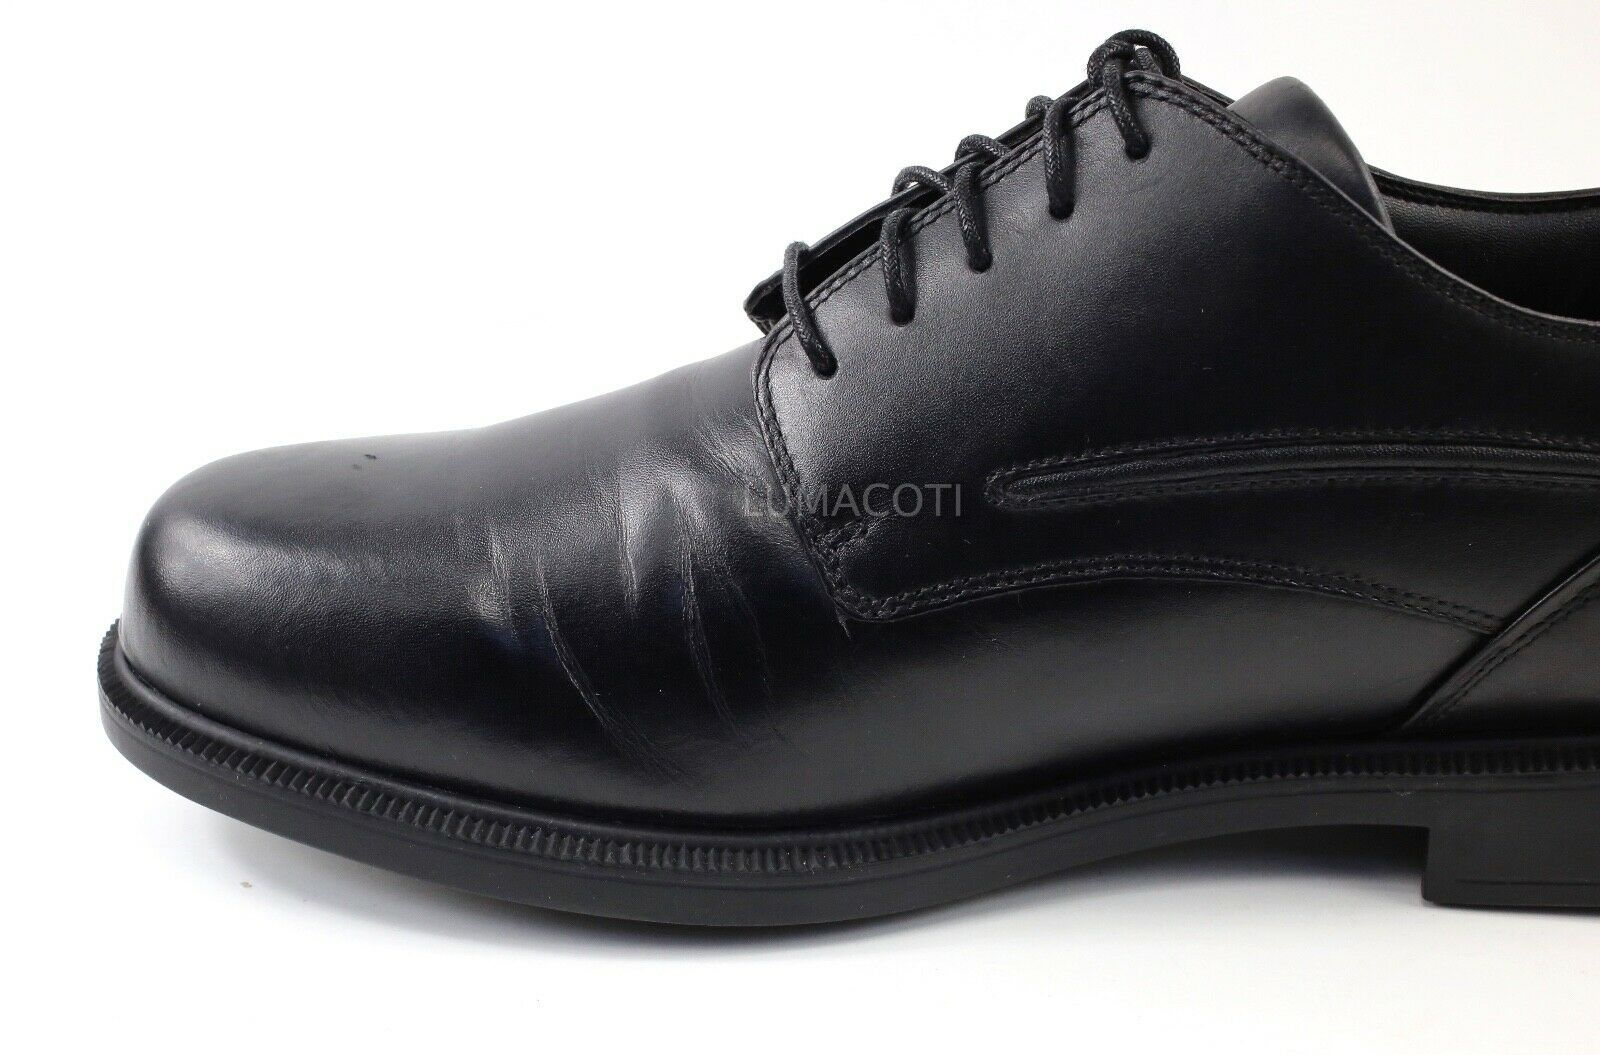 Mens Dunham Burlington Waterproof Plain Toe Oxford - Black Leather Size 15(4E)